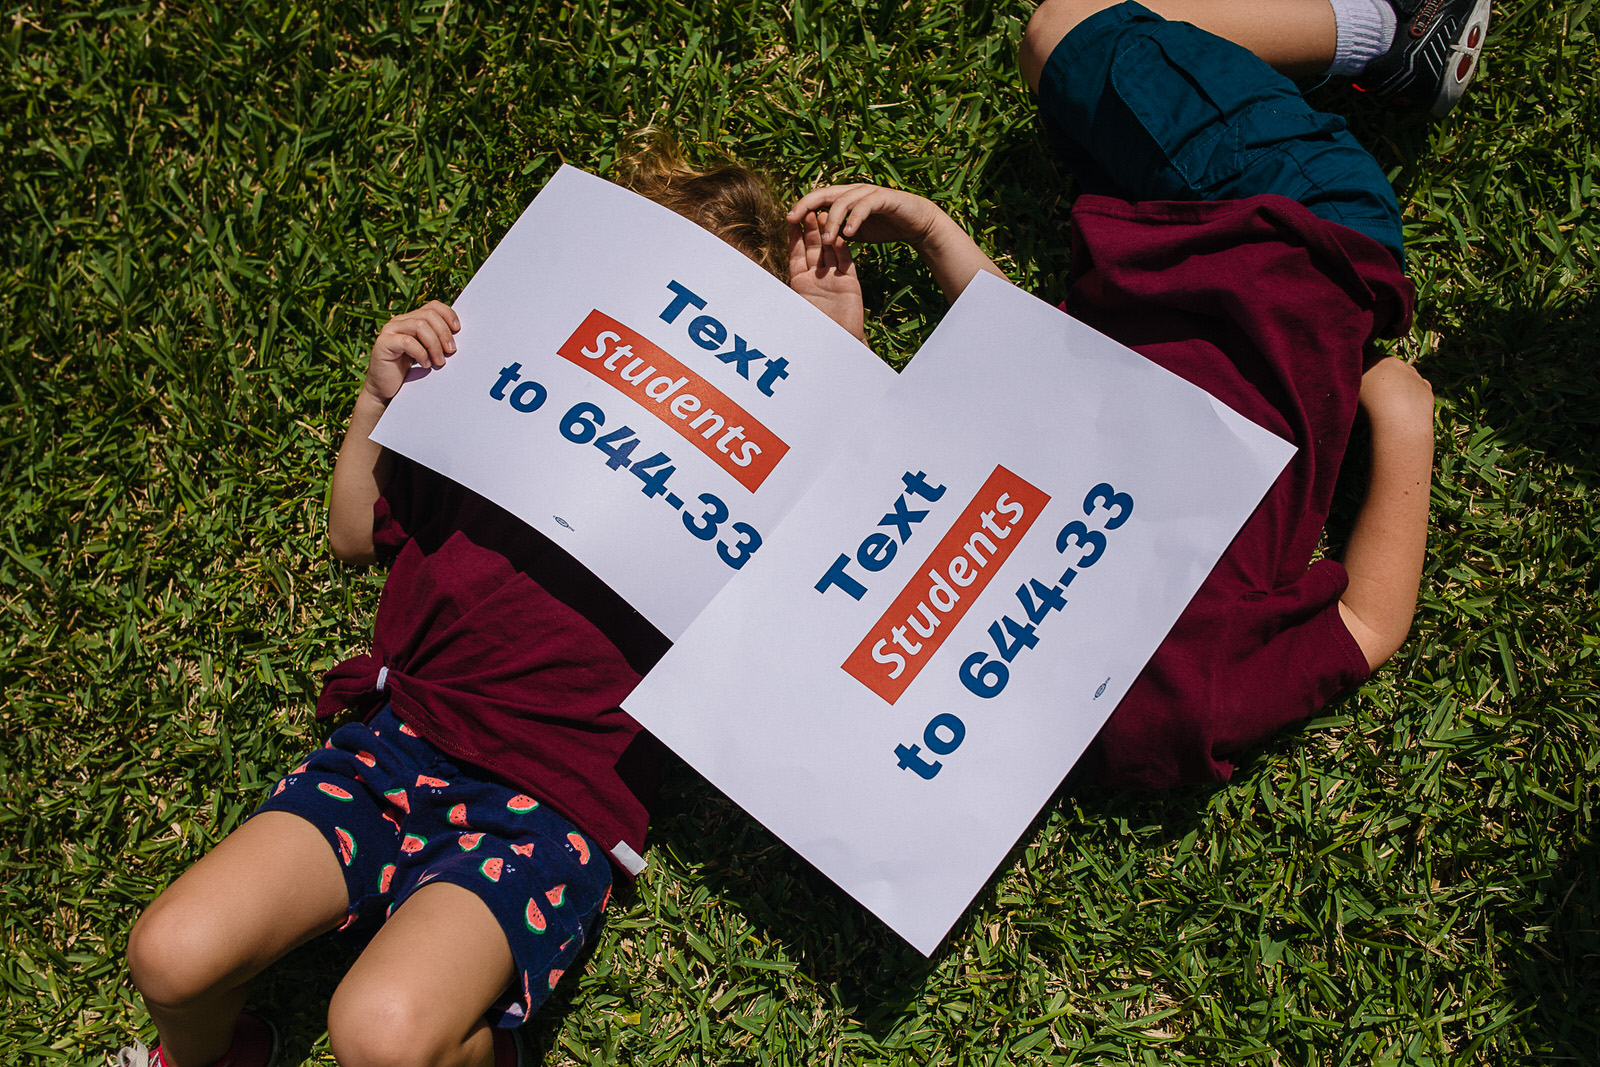 March-For-Our-Lives-Parkland-FL-March-24-2018-Sonju-Photography-11.JPG